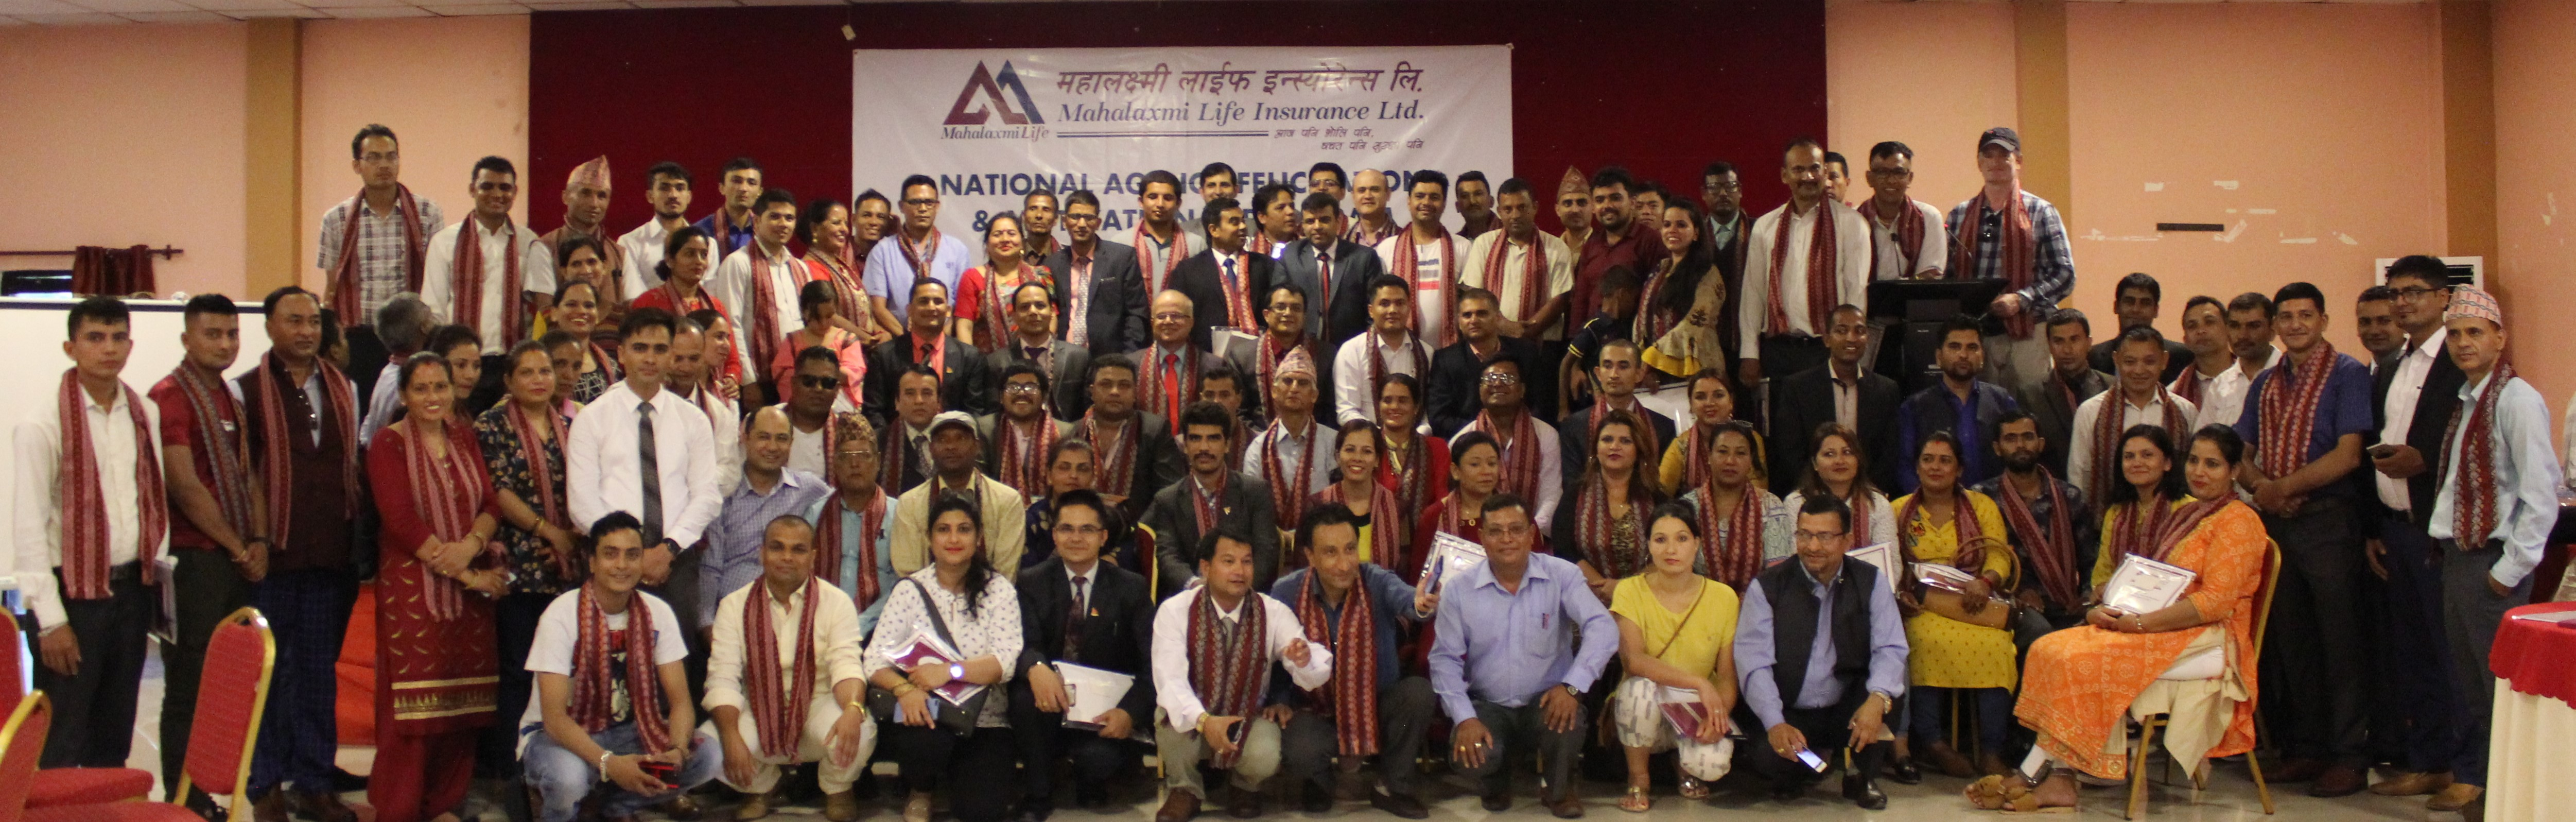 National agent felicitation program conducted by Mahalaxmi Life Insurance Ltd.